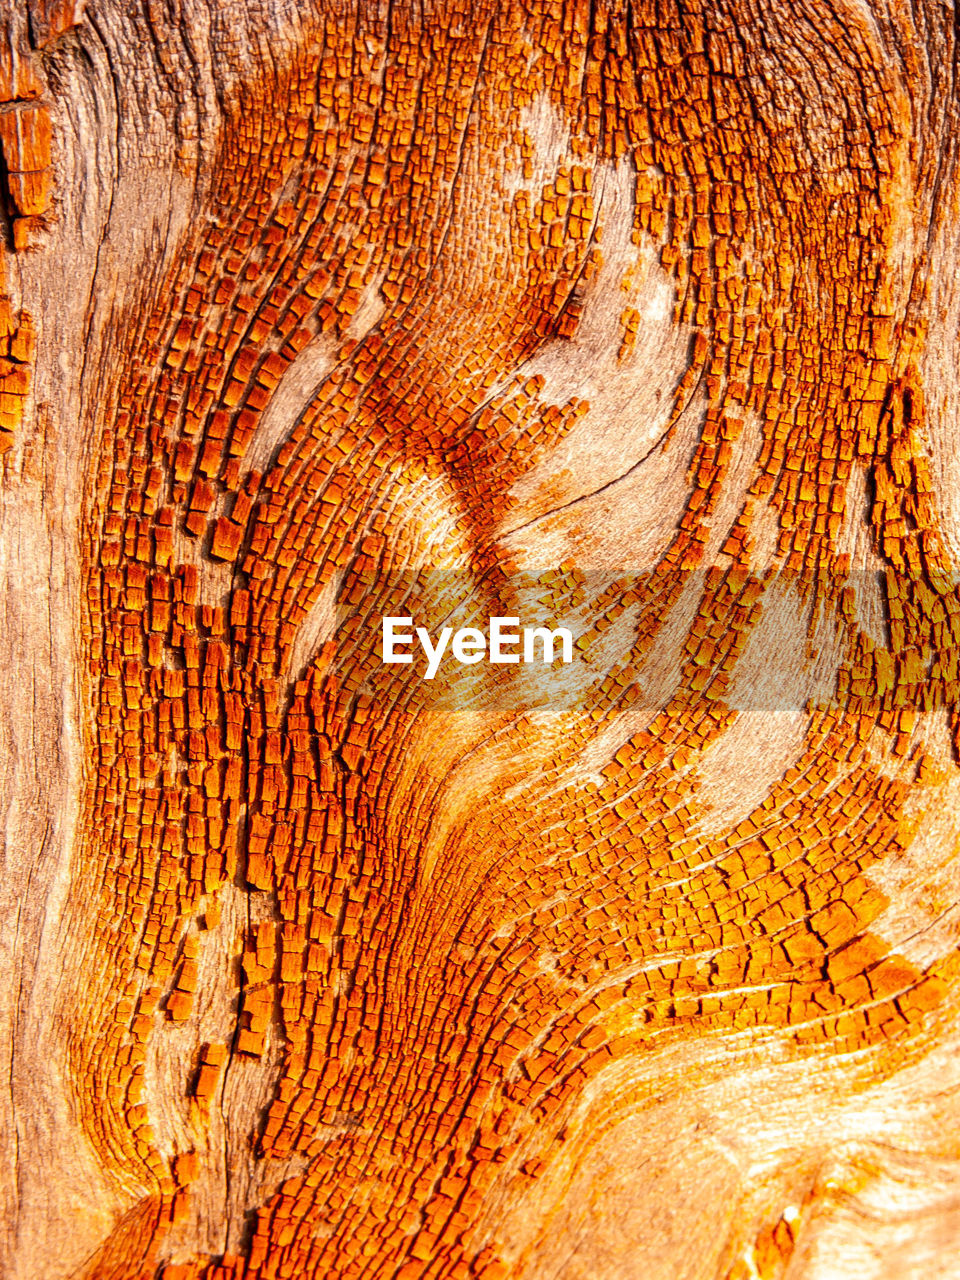 textured, close-up, backgrounds, full frame, wood - material, tree, pattern, tree trunk, trunk, no people, plant, natural pattern, wood, rough, bark, nature, brown, cross section, wood grain, forest, woodland, tree ring, textured effect